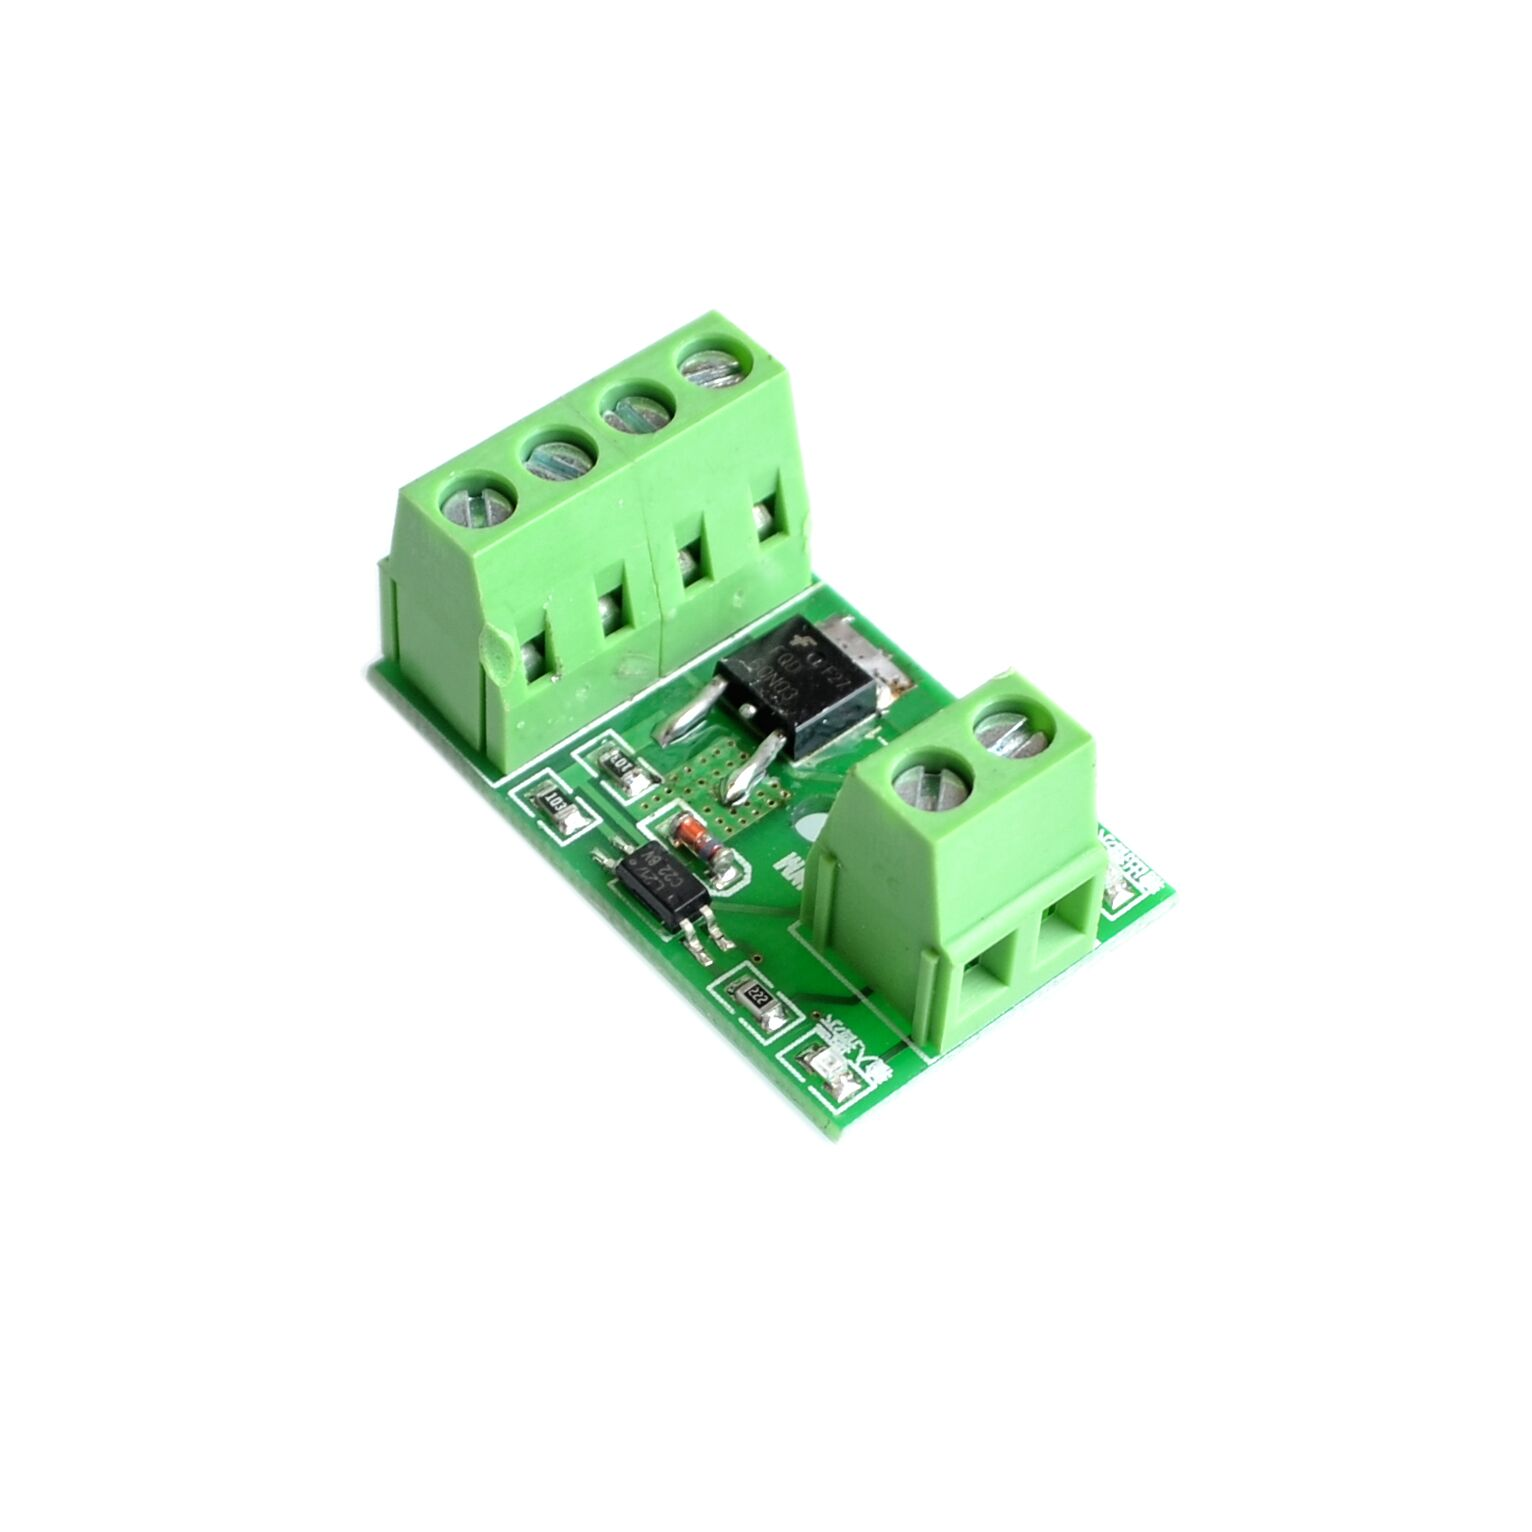 Opto Mosfet Pwm Drive Isolated Unipolar Stepper Motor Driver Circuit Izole Drivers Mos Optocoupler Isolation Module Field Effect 1532x1532